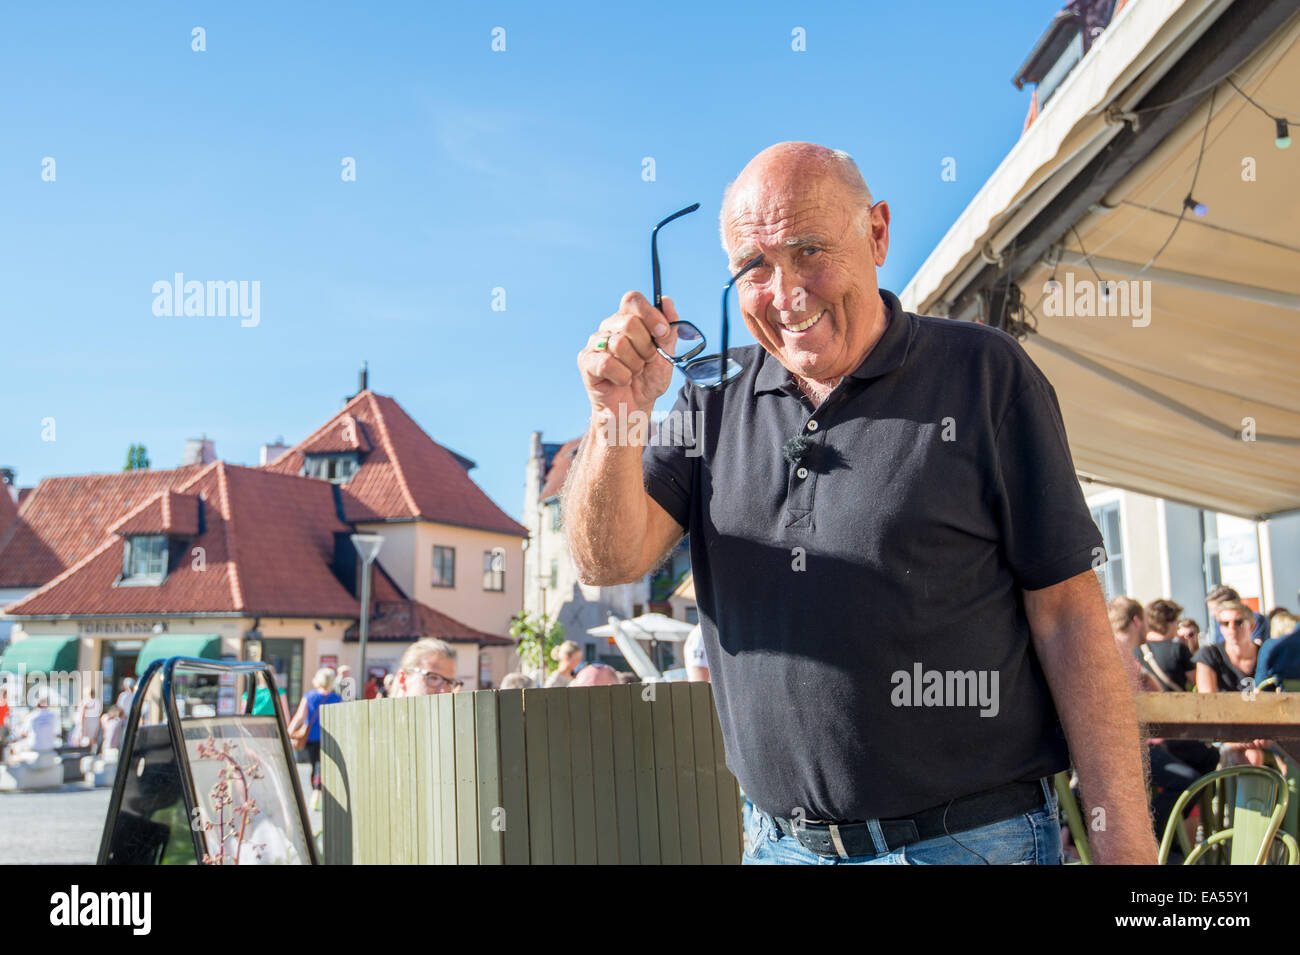 Ingvar Oldsberg after recording a TV show in medieval Visby, Sweden. - Stock Image